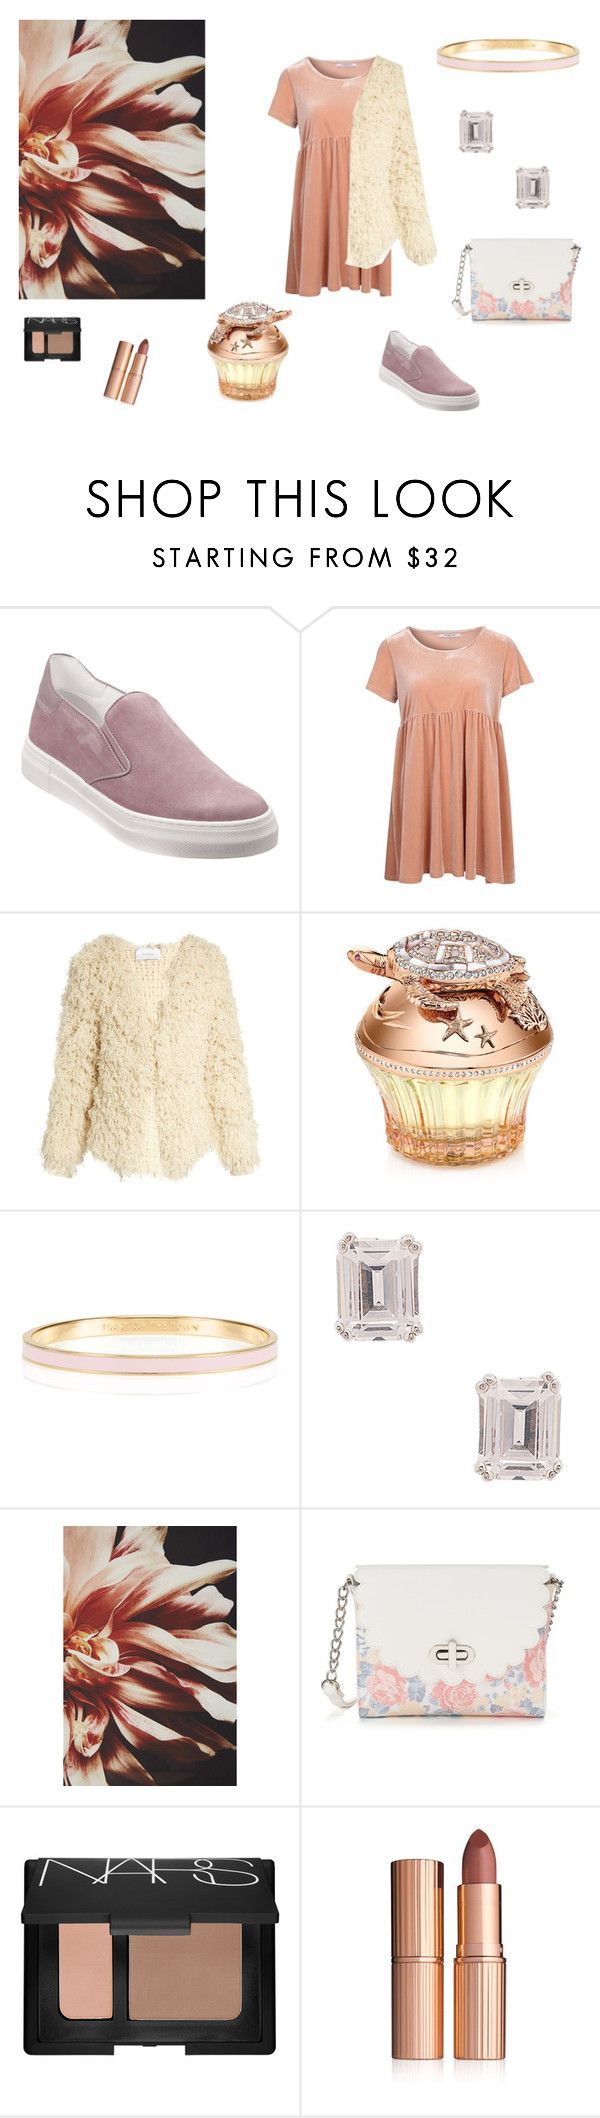 """Астра"" by anna-modestovna ❤ liked on Polyvore featuring Glamorous, Ryan Roche, House of Sillage, Kate Spade, Lisa Freede, Anthropologie, Candie's, NARS Cosmetics and Charlotte Tilbury"